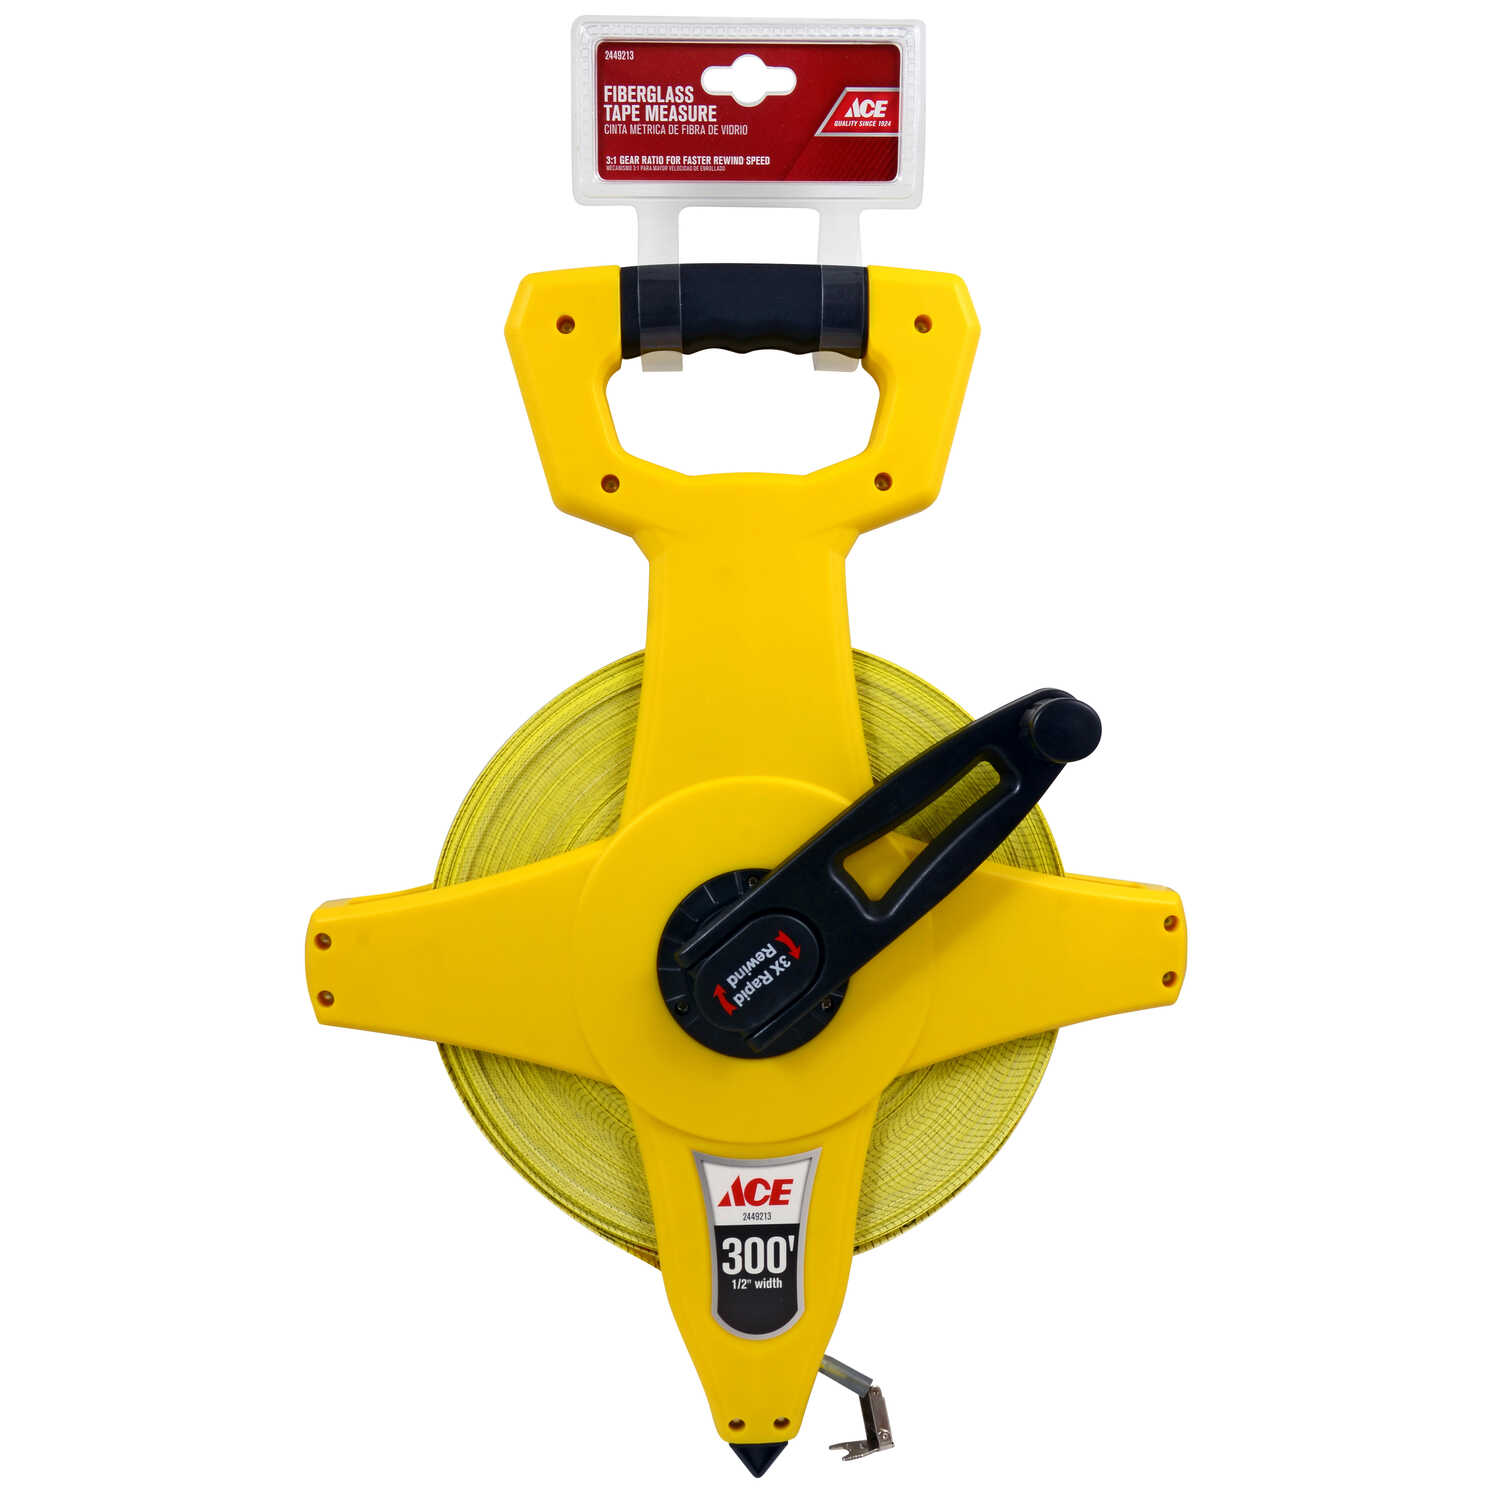 Ace  300 ft. L x 0.5 in. W Fiberglass Long Tape Measure  10 pk Yellow